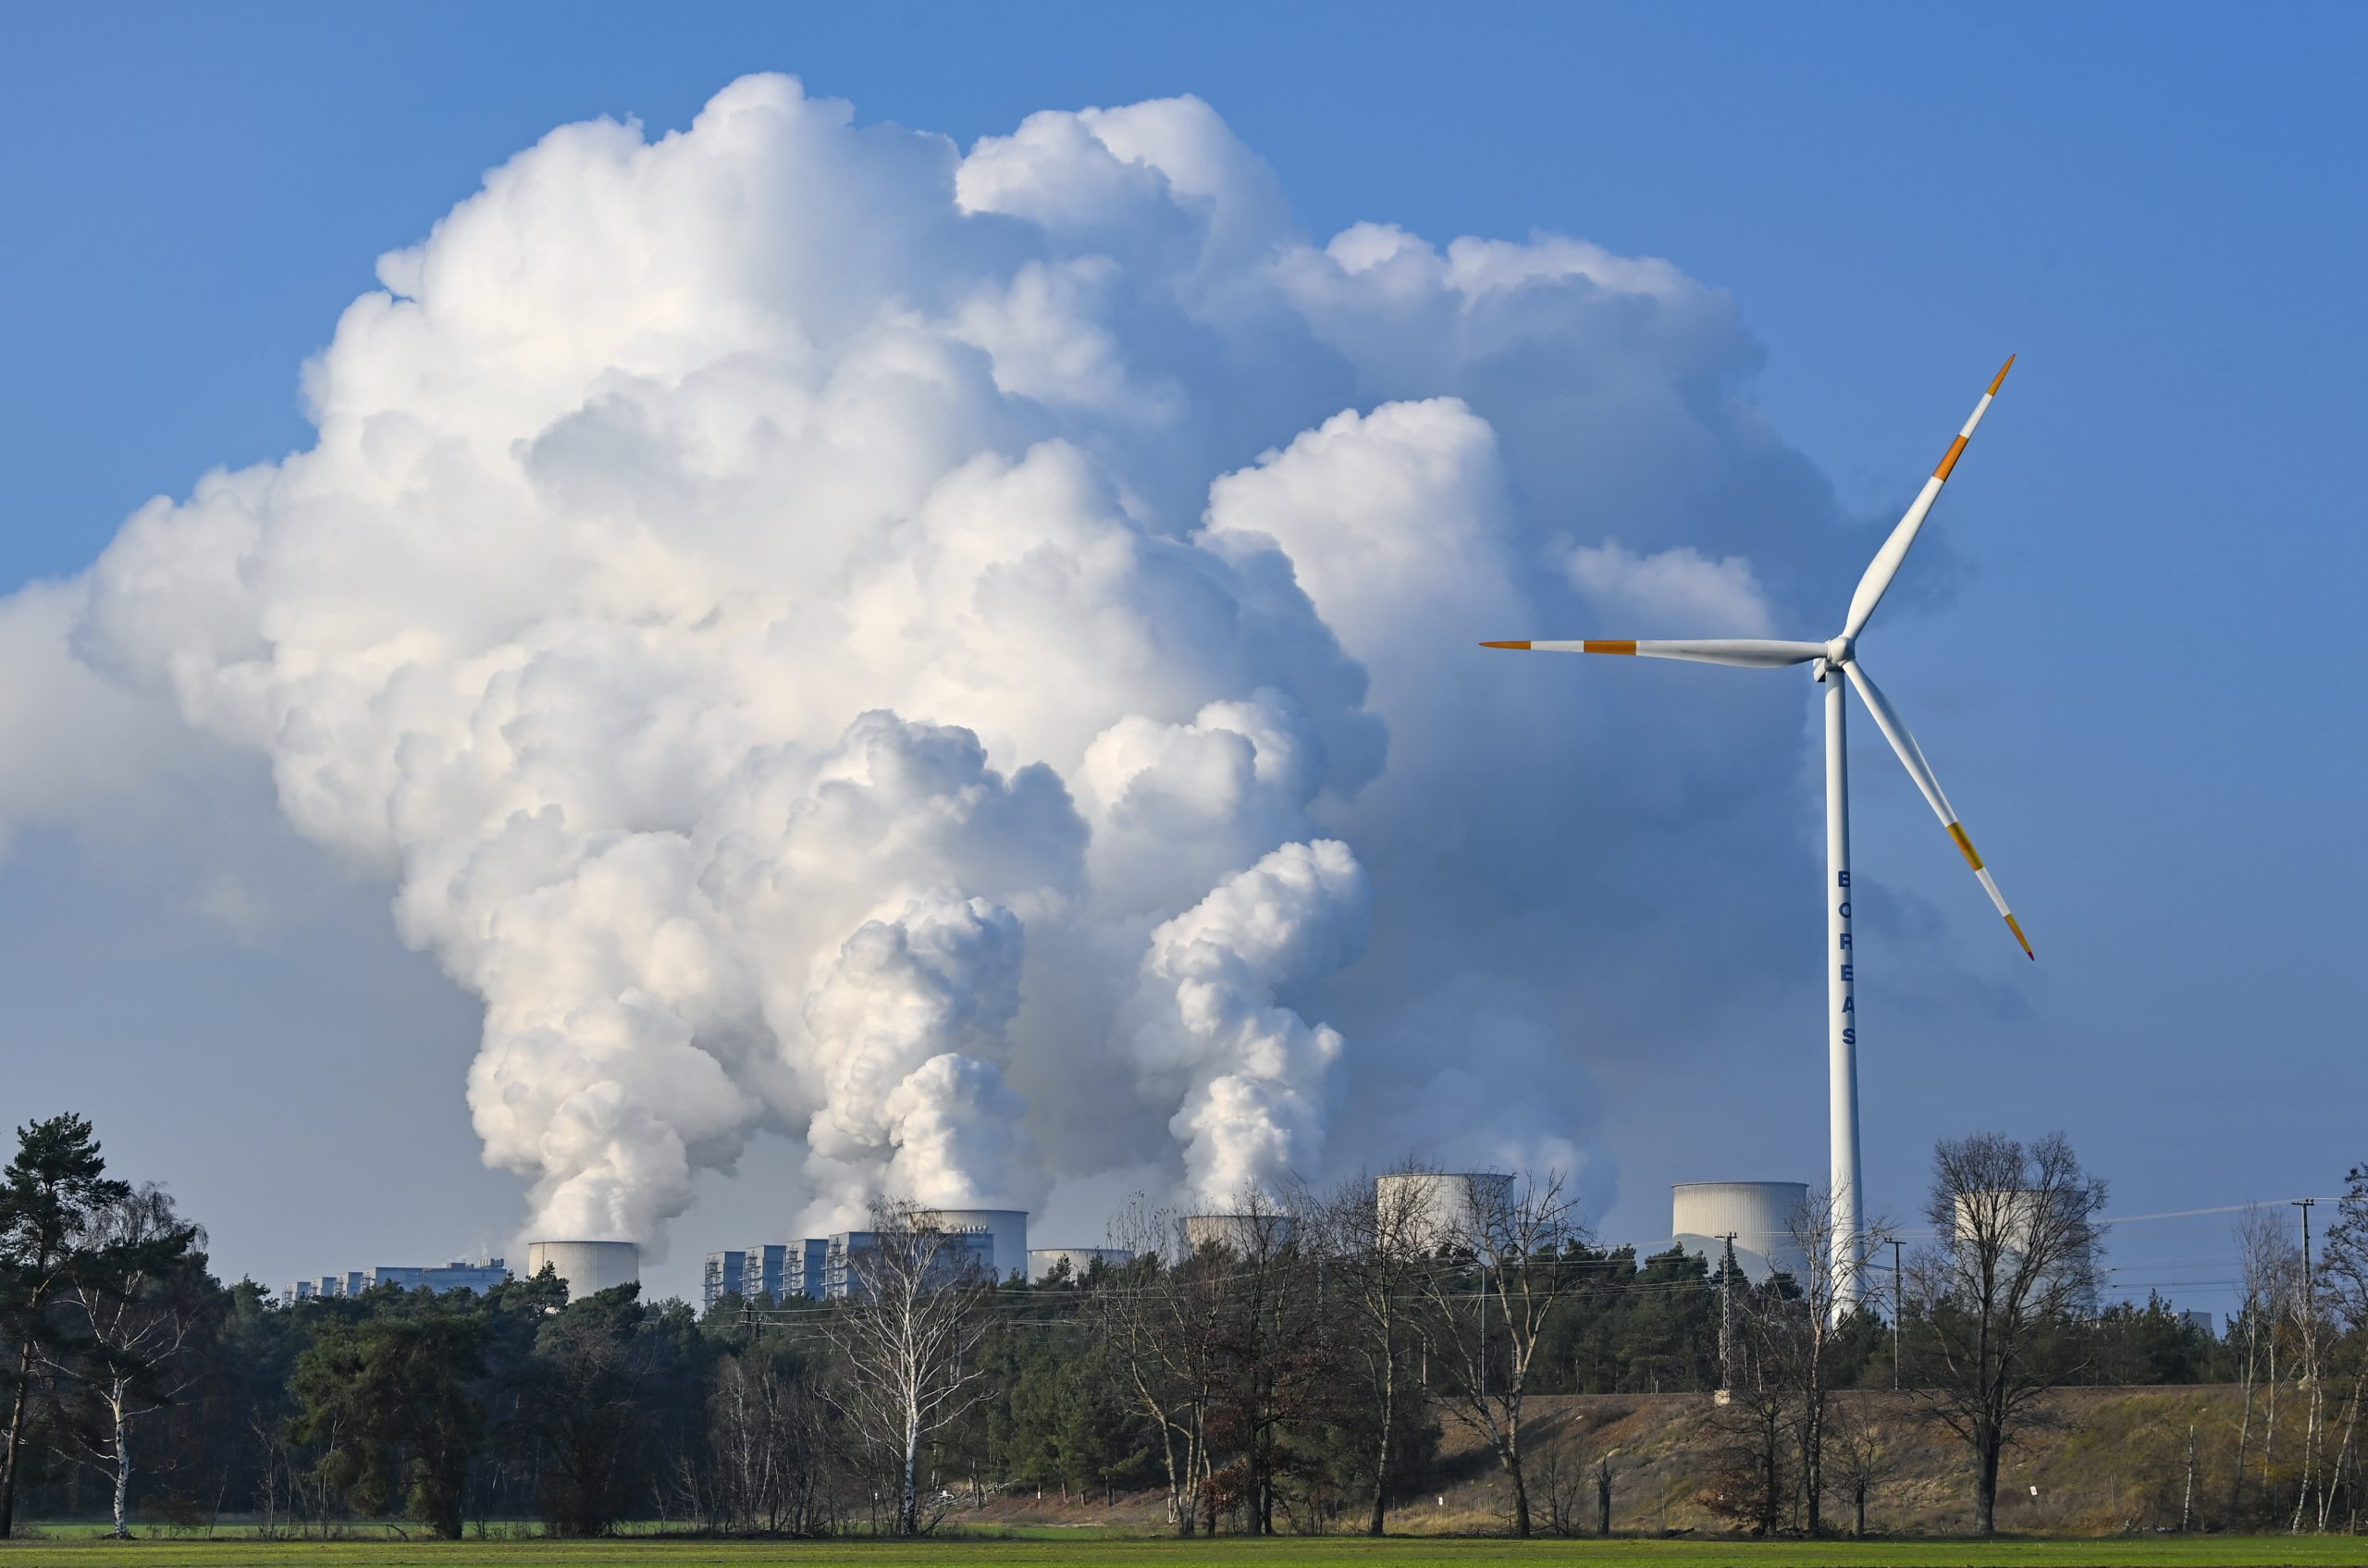 Renewable generation growing but not enough to meet demand, IEA says